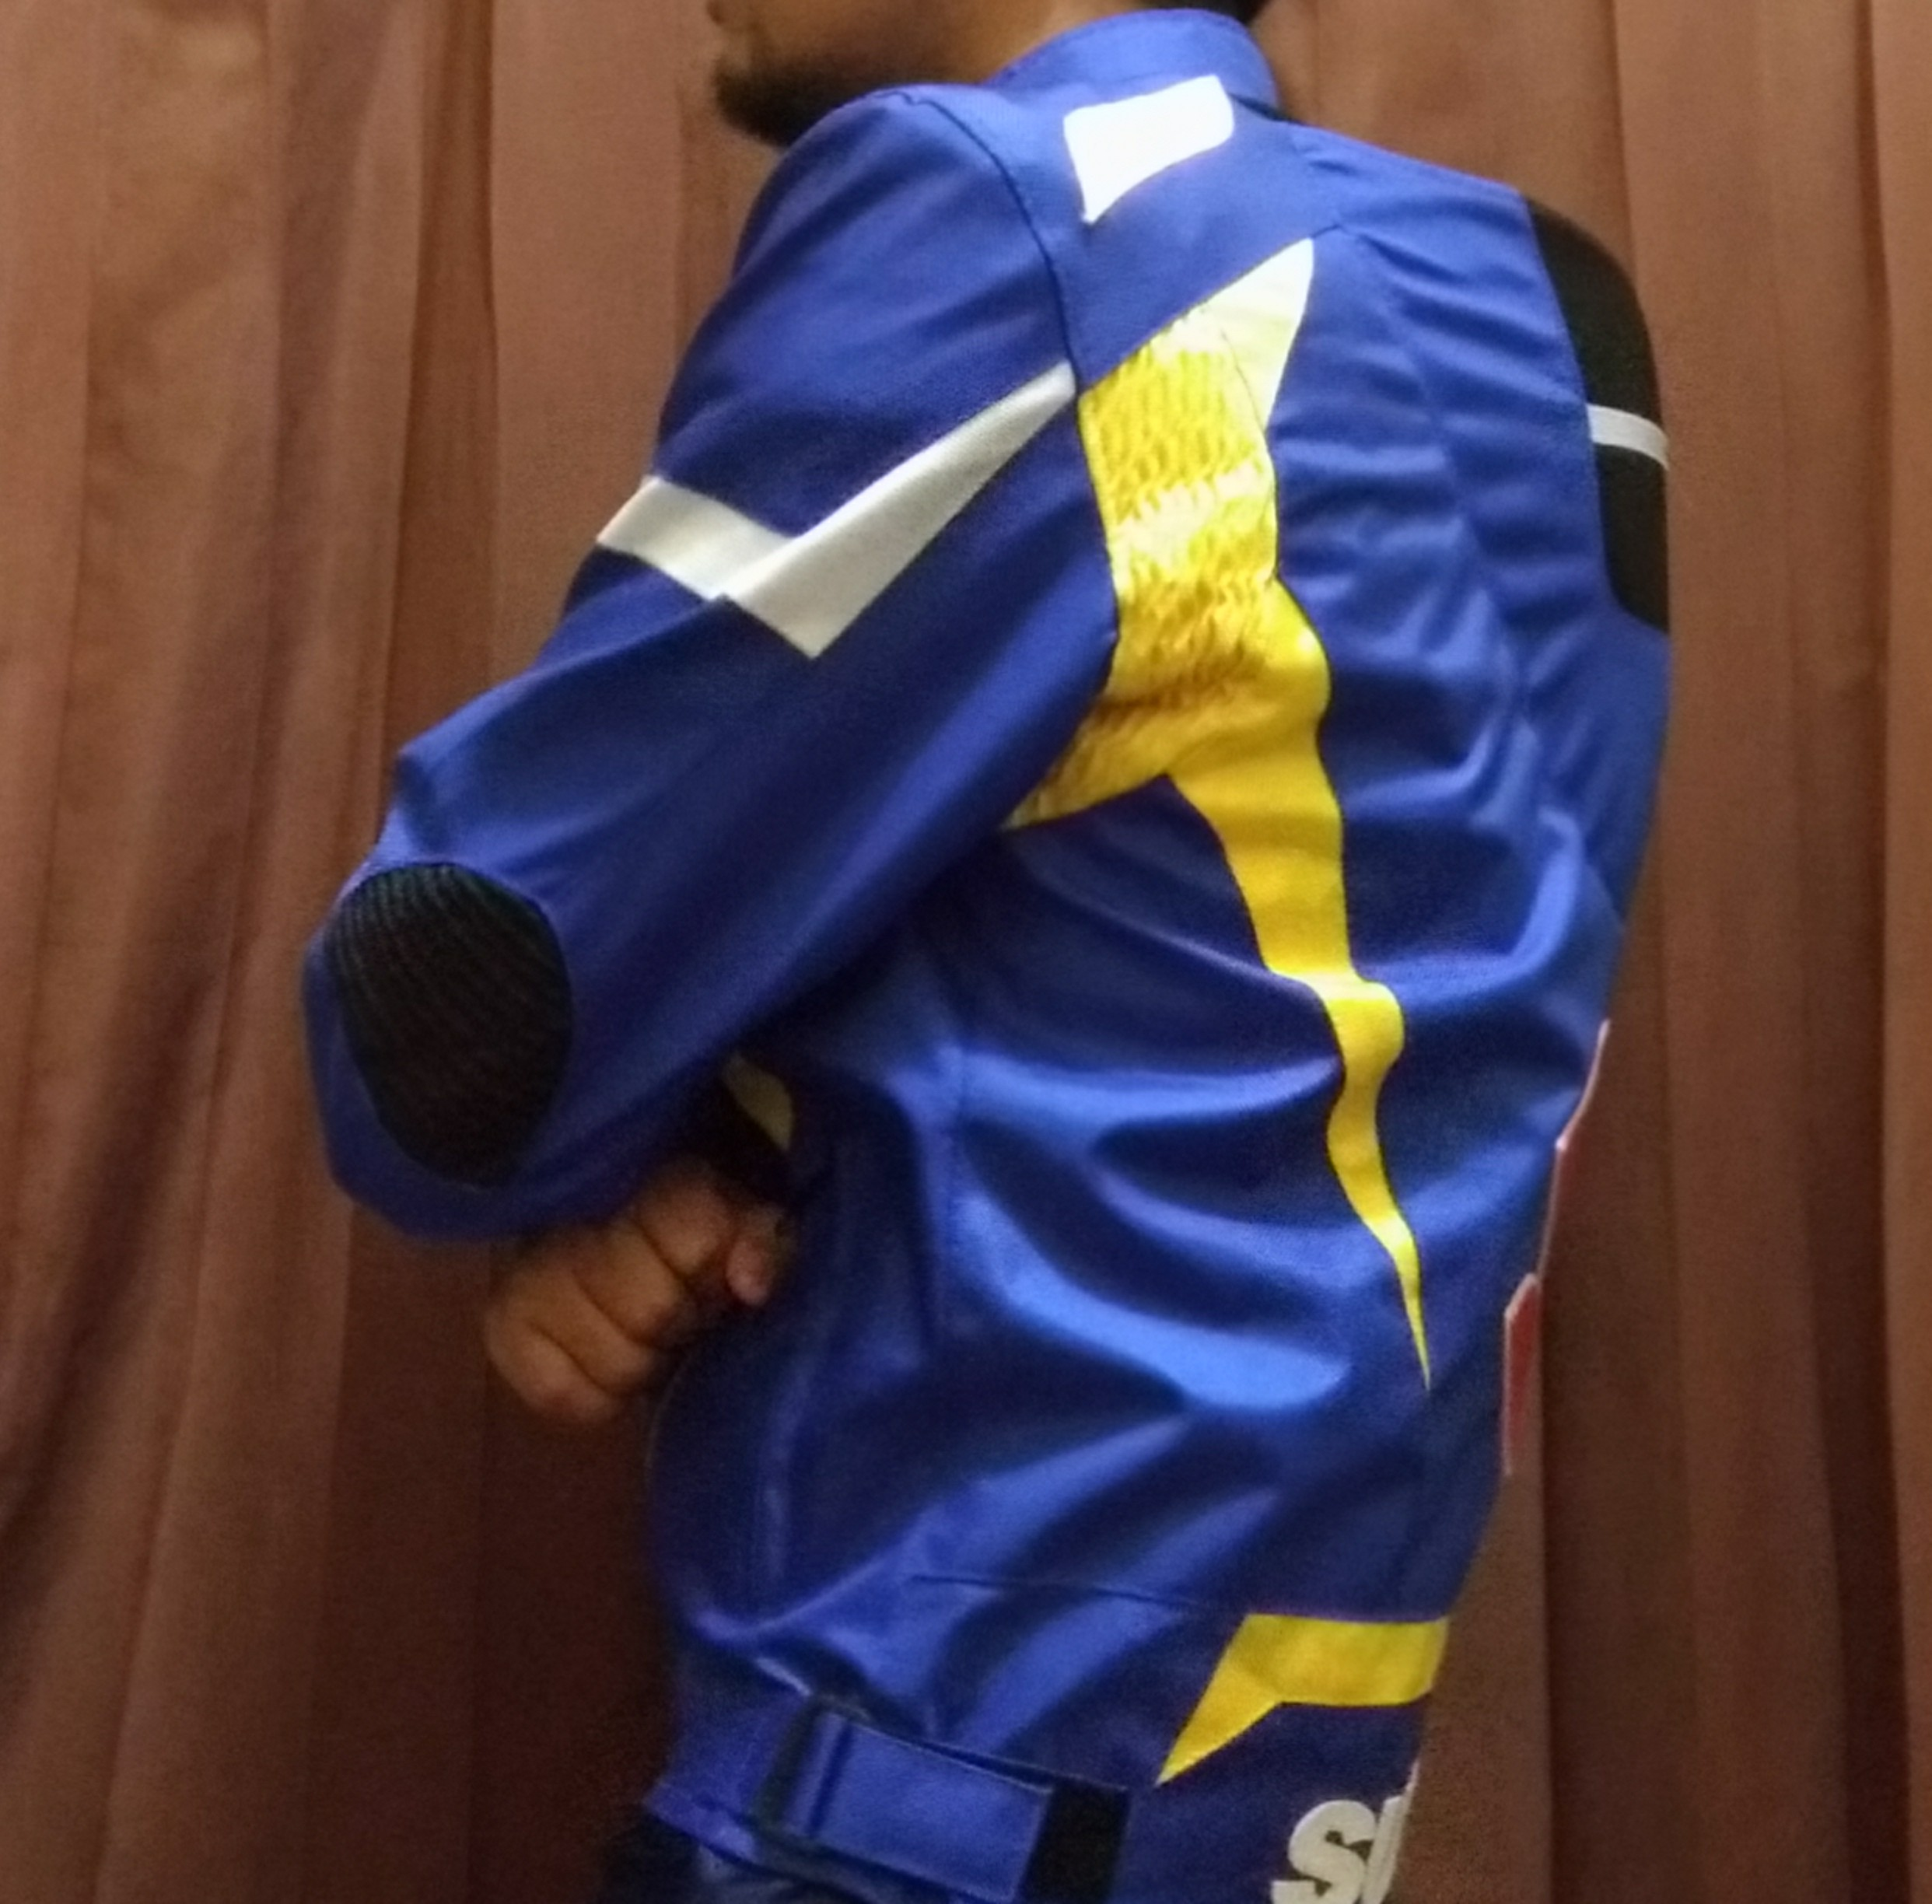 Review Jaket Suzuki Ecstar samping